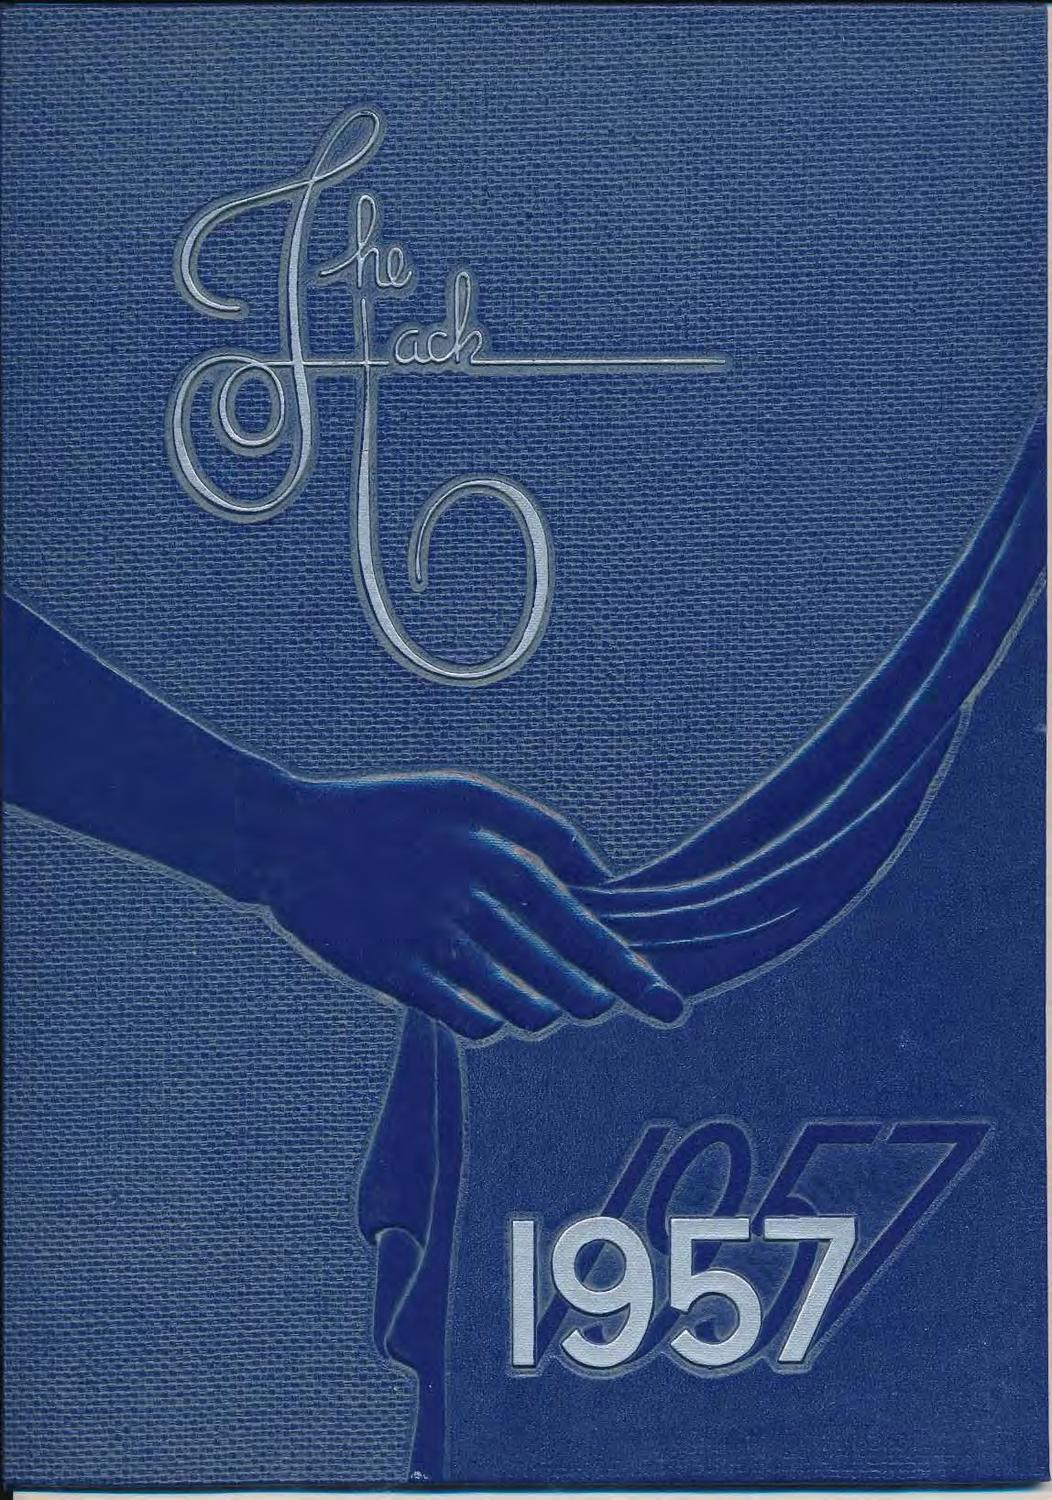 1957 Hack Yearbook by Taylor Memorial Library - issuu